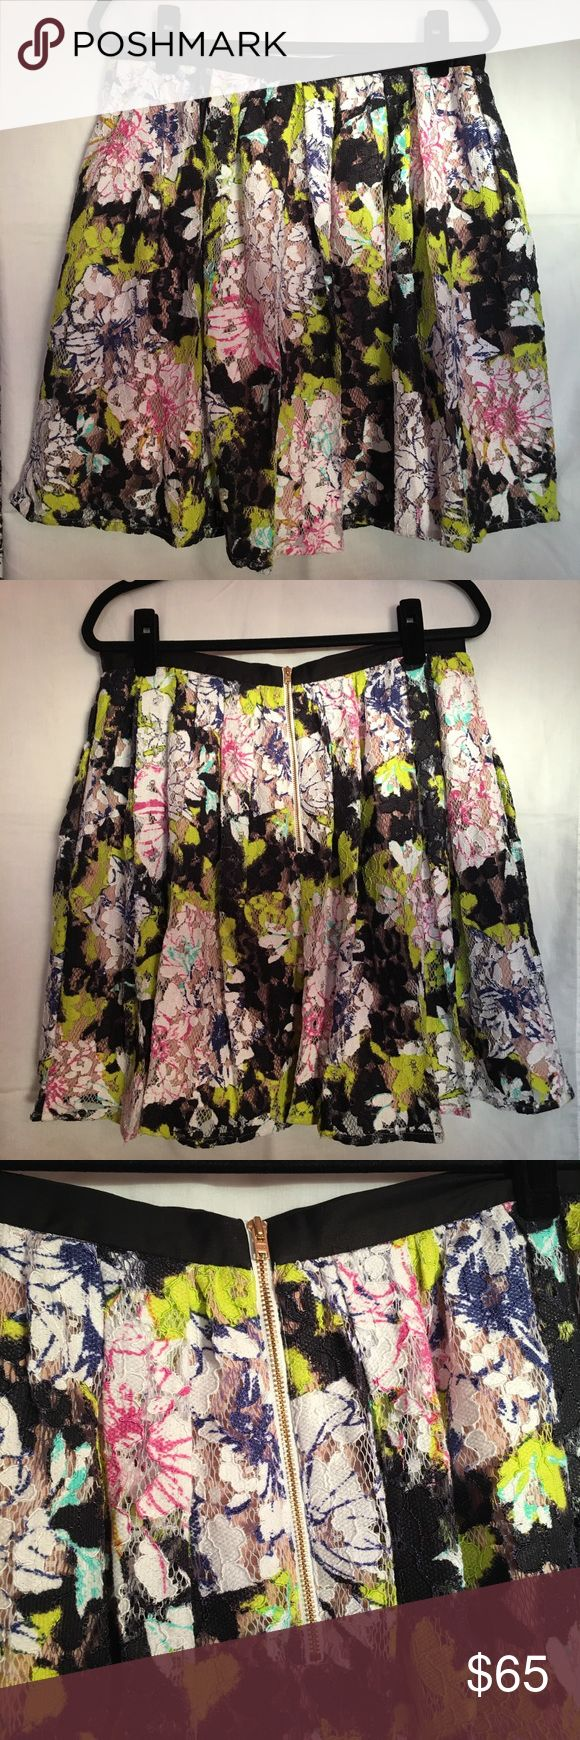 French Connection Botanical Trip lace skirt Stunning French Connection Botanical Trip lace skirt in acid Blonde  Size 12  Exposed zipper in the back. Gorgeous gold zipper  Lined in a light tan material.    🚭 Comes from a smoke-free home  🍀 No rips, tears, or stains 🦋 Excellent used condition French Connection Skirts Circle & Skater